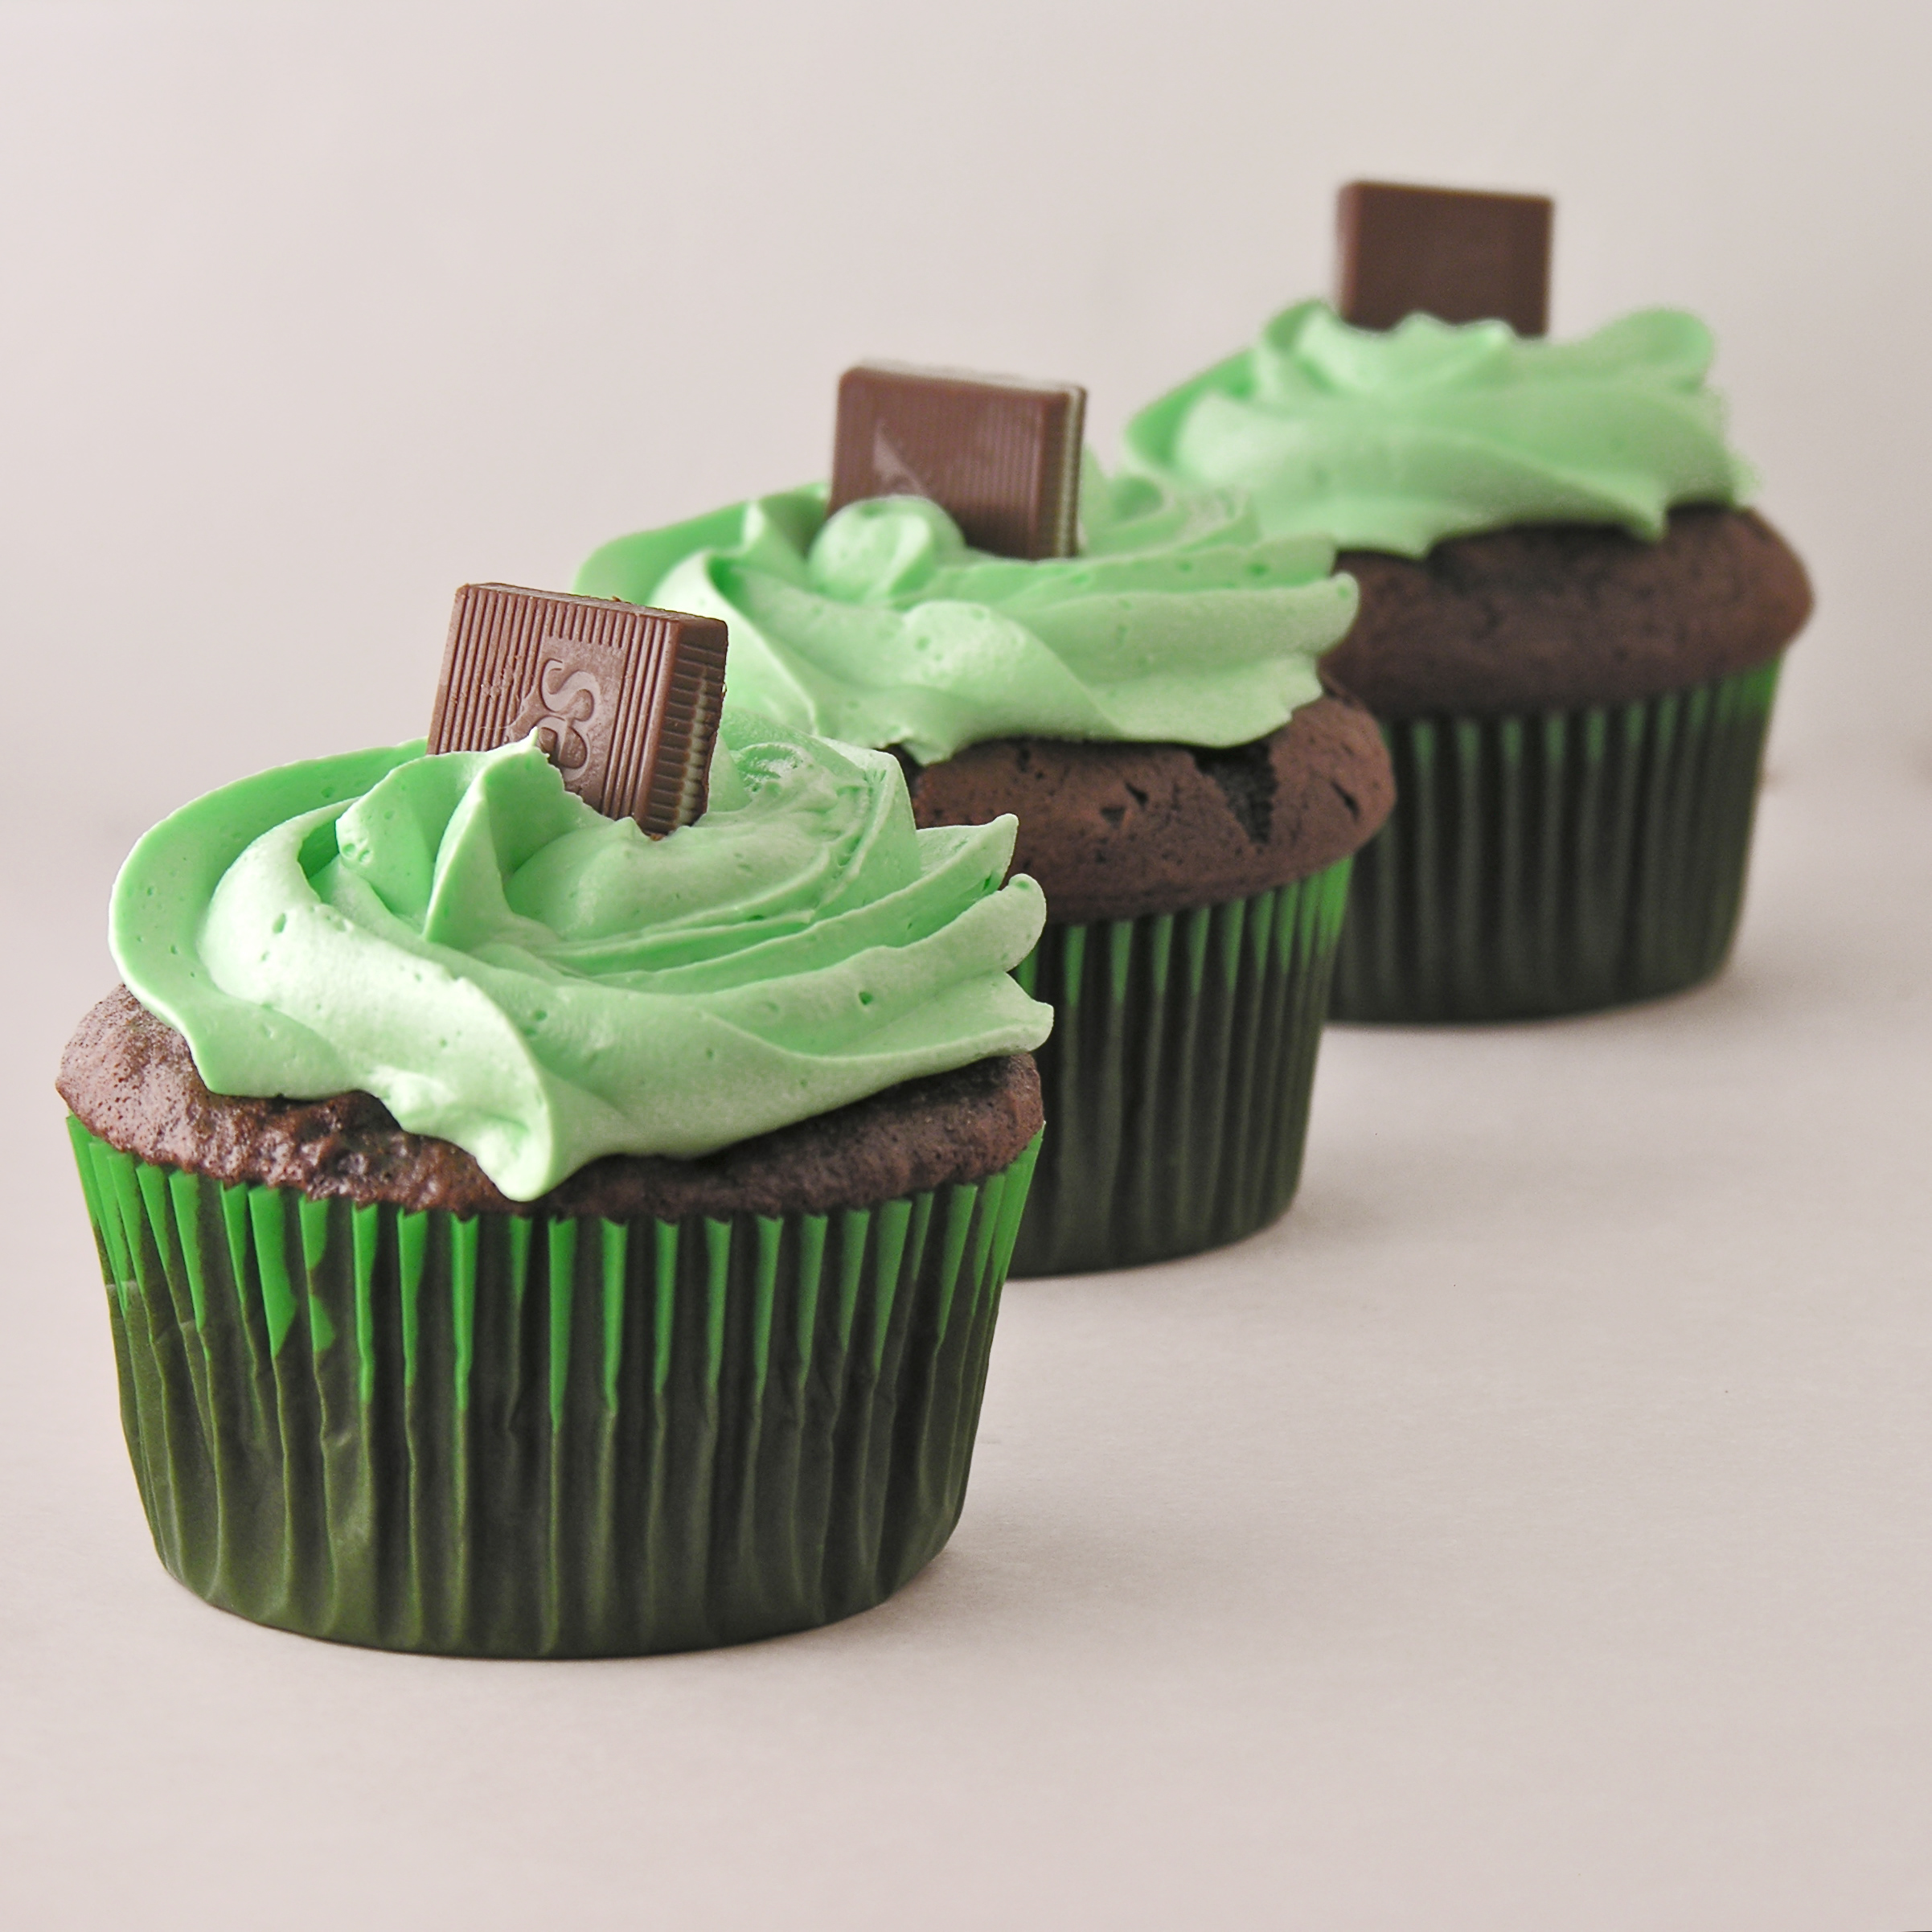 st patrics day cupcakes wallpaper download